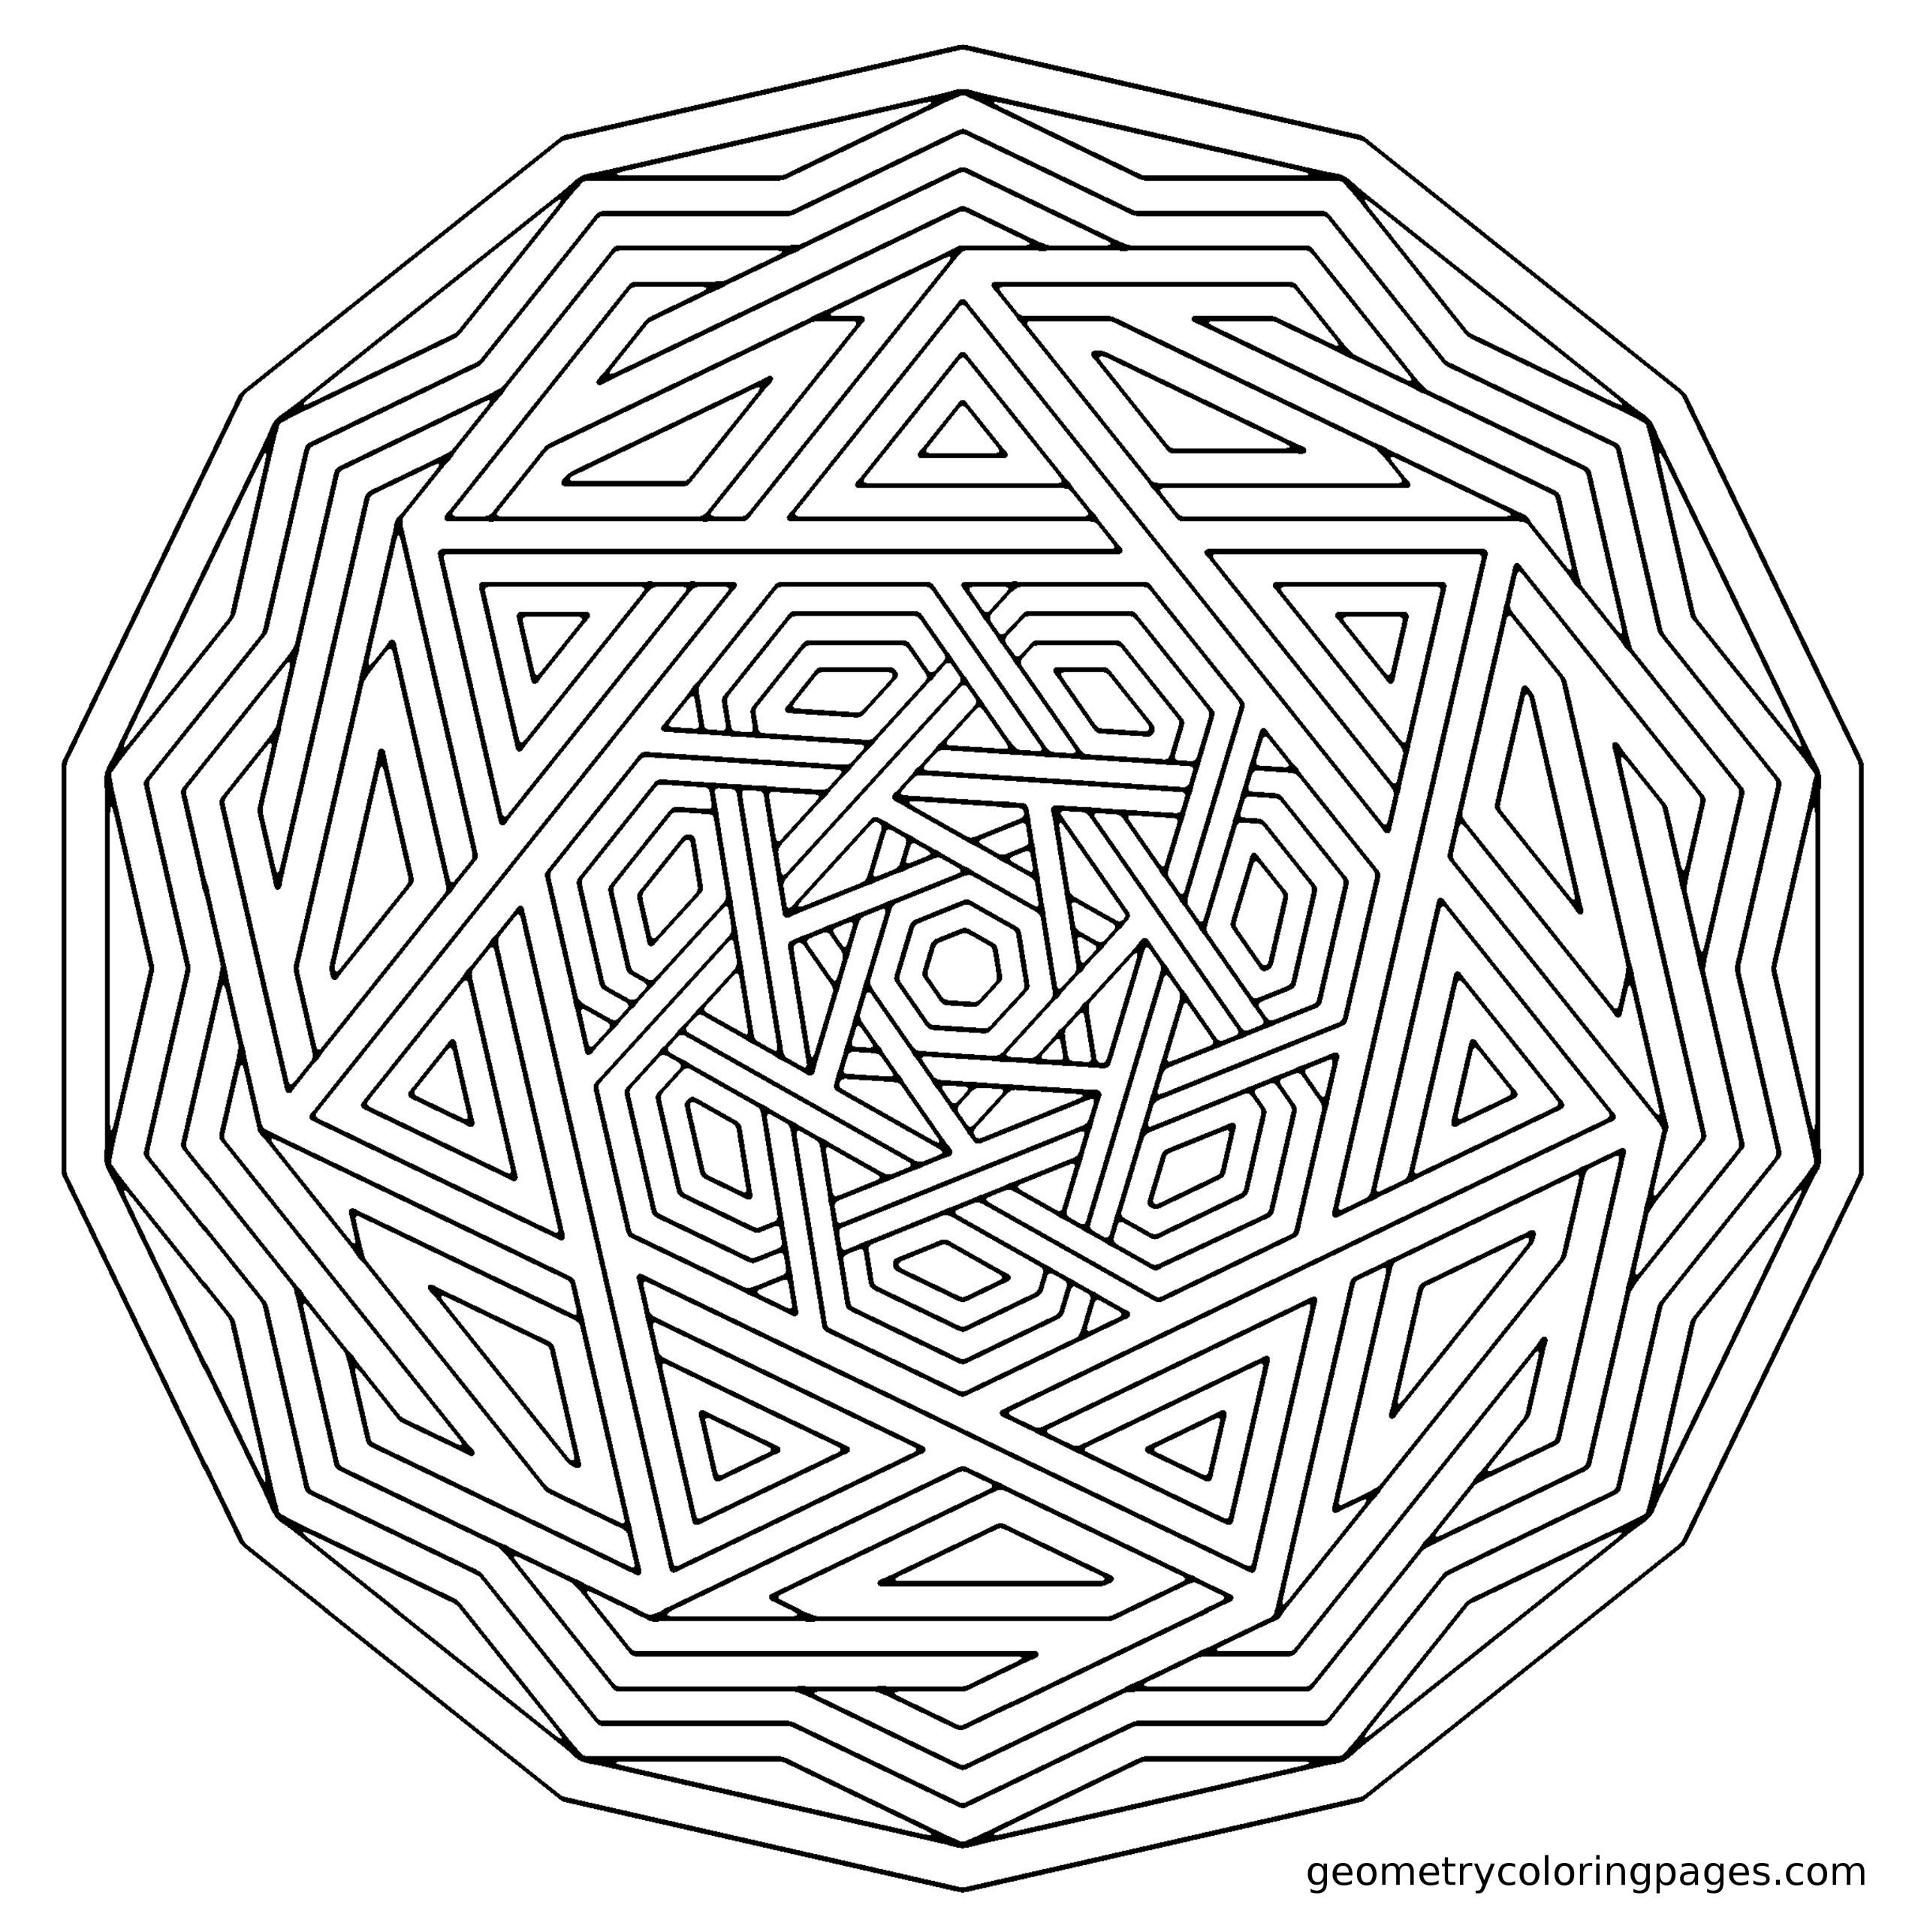 complex geometric coloring pages printable - photo#15